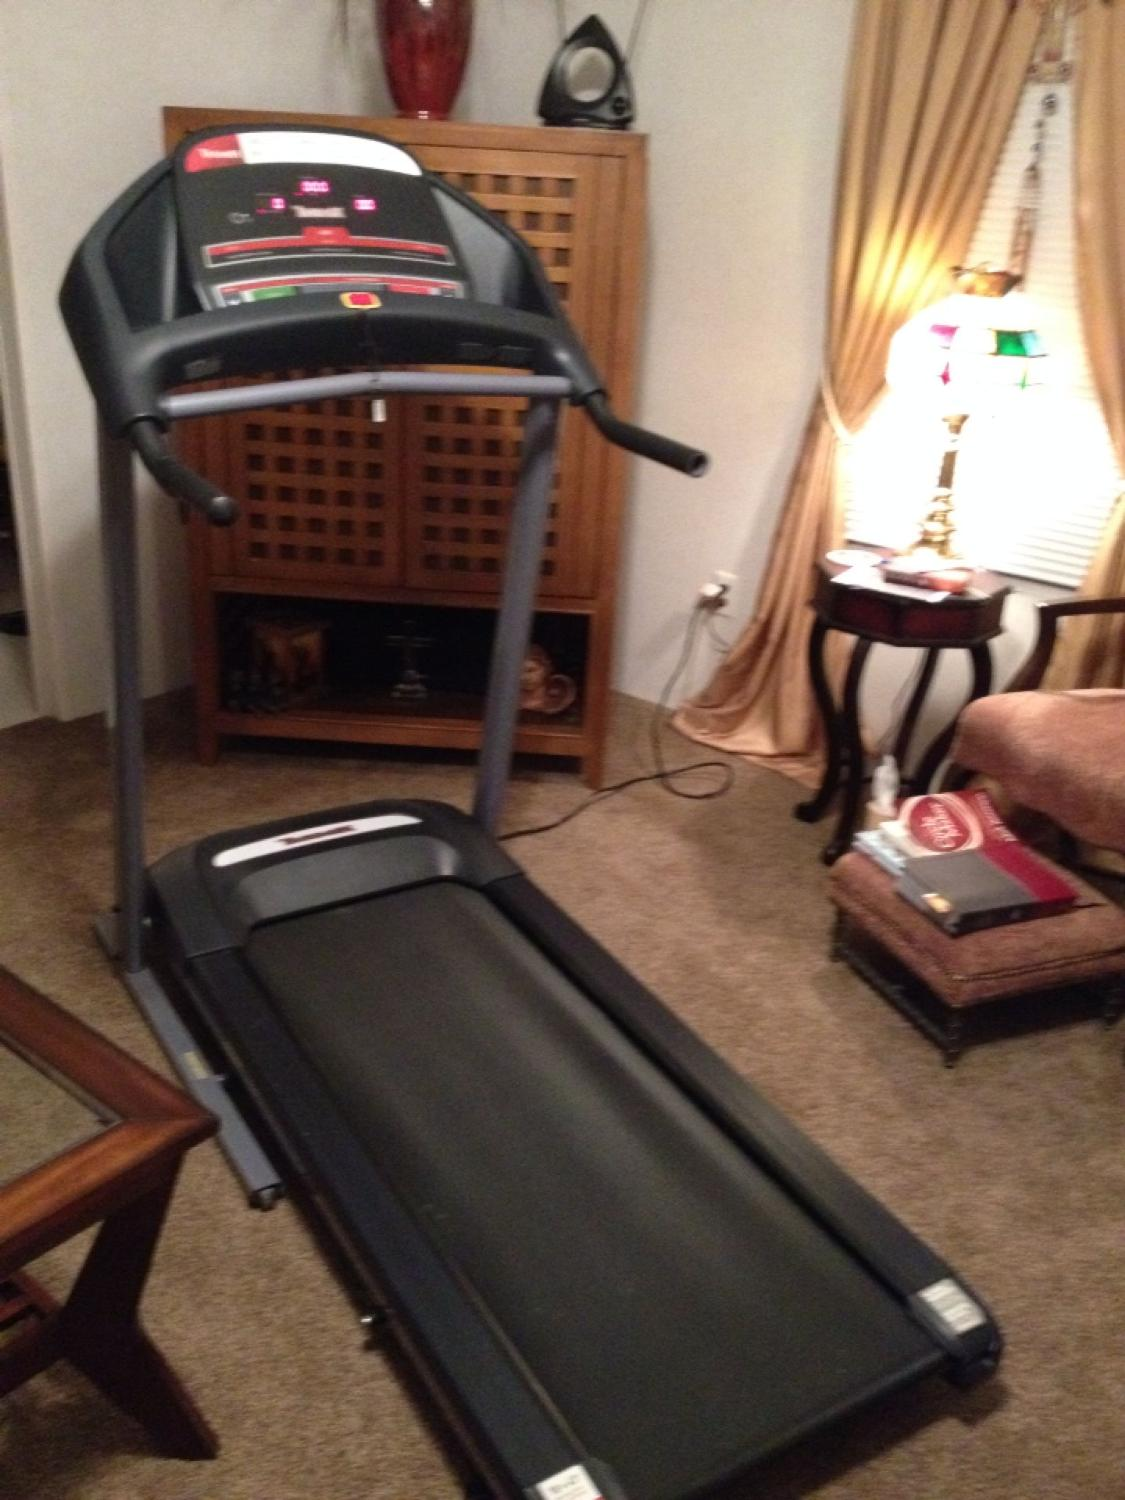 find more treadmill,vguc, ppu.triumph 400t/manual incline, preset